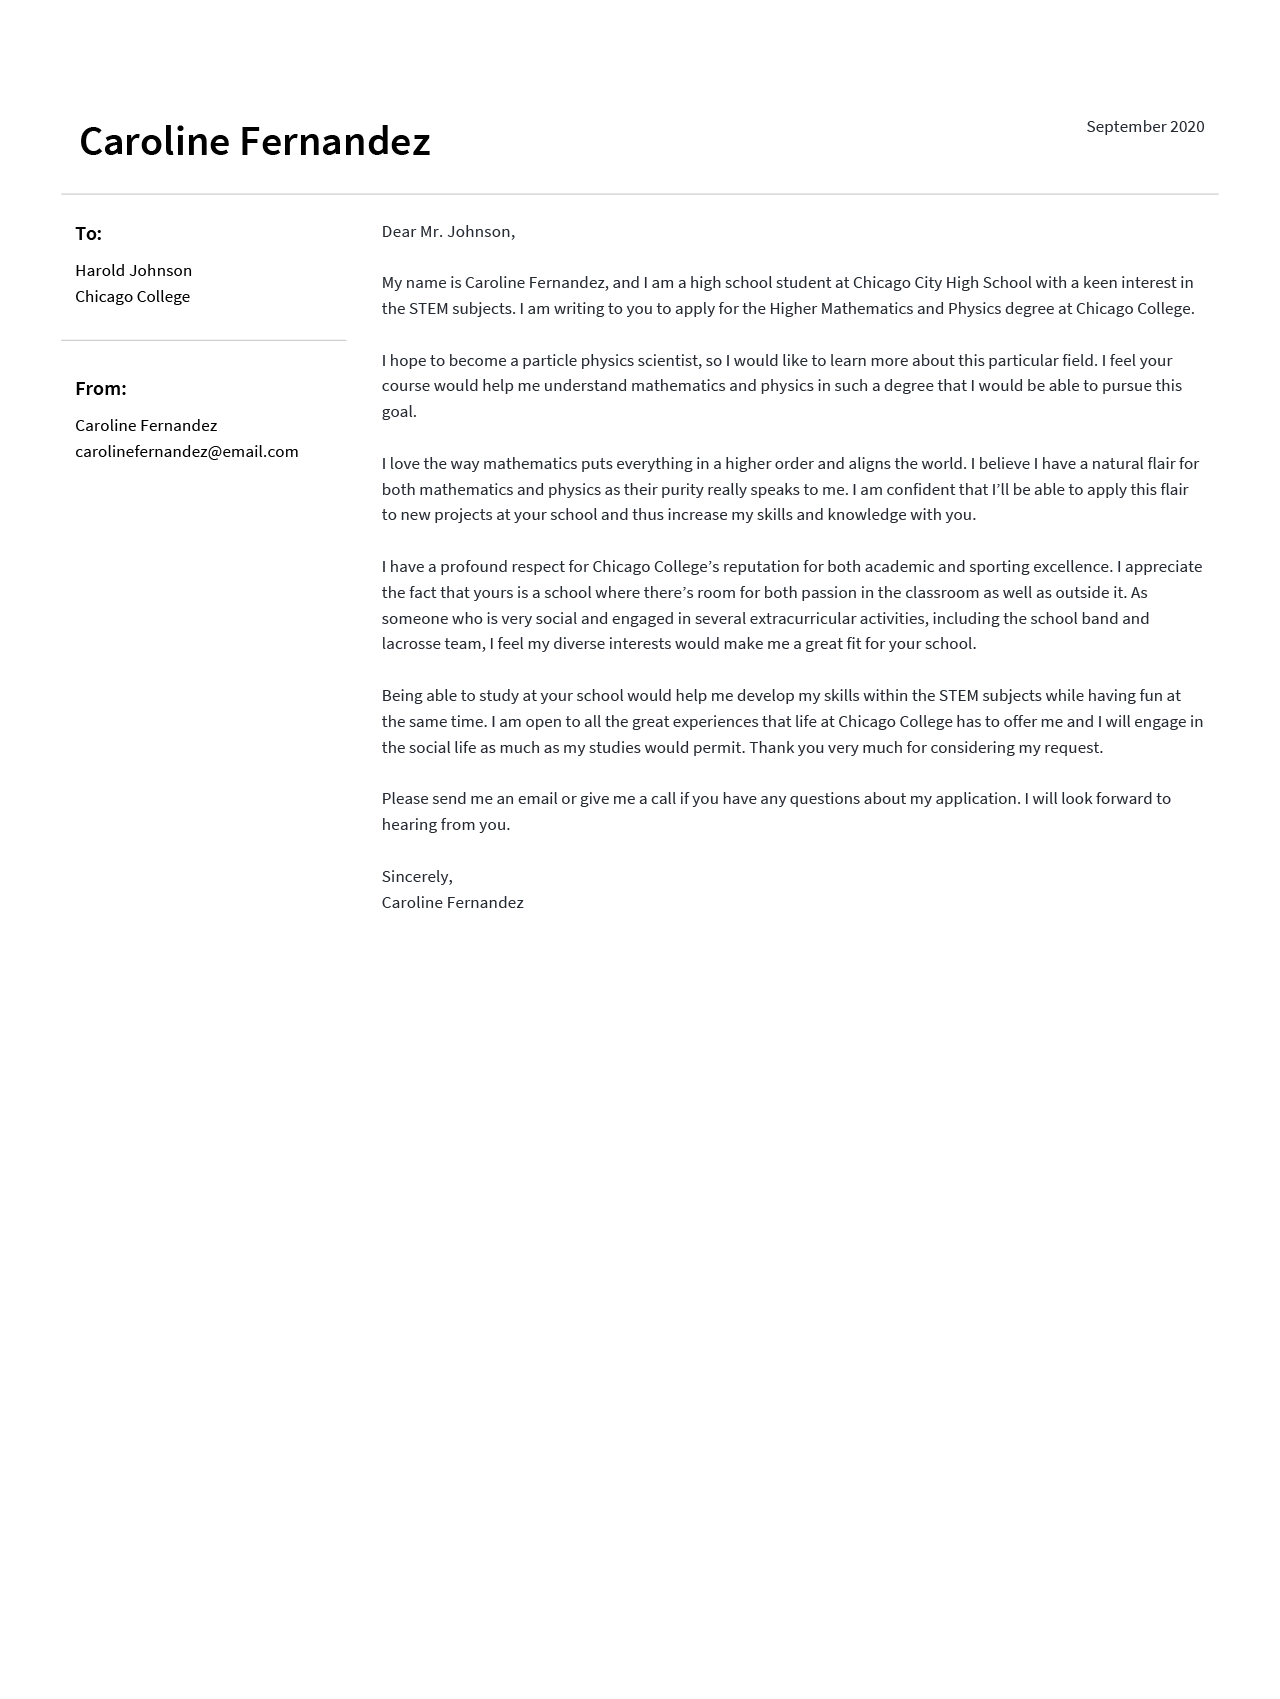 A motivation letter example for a college application